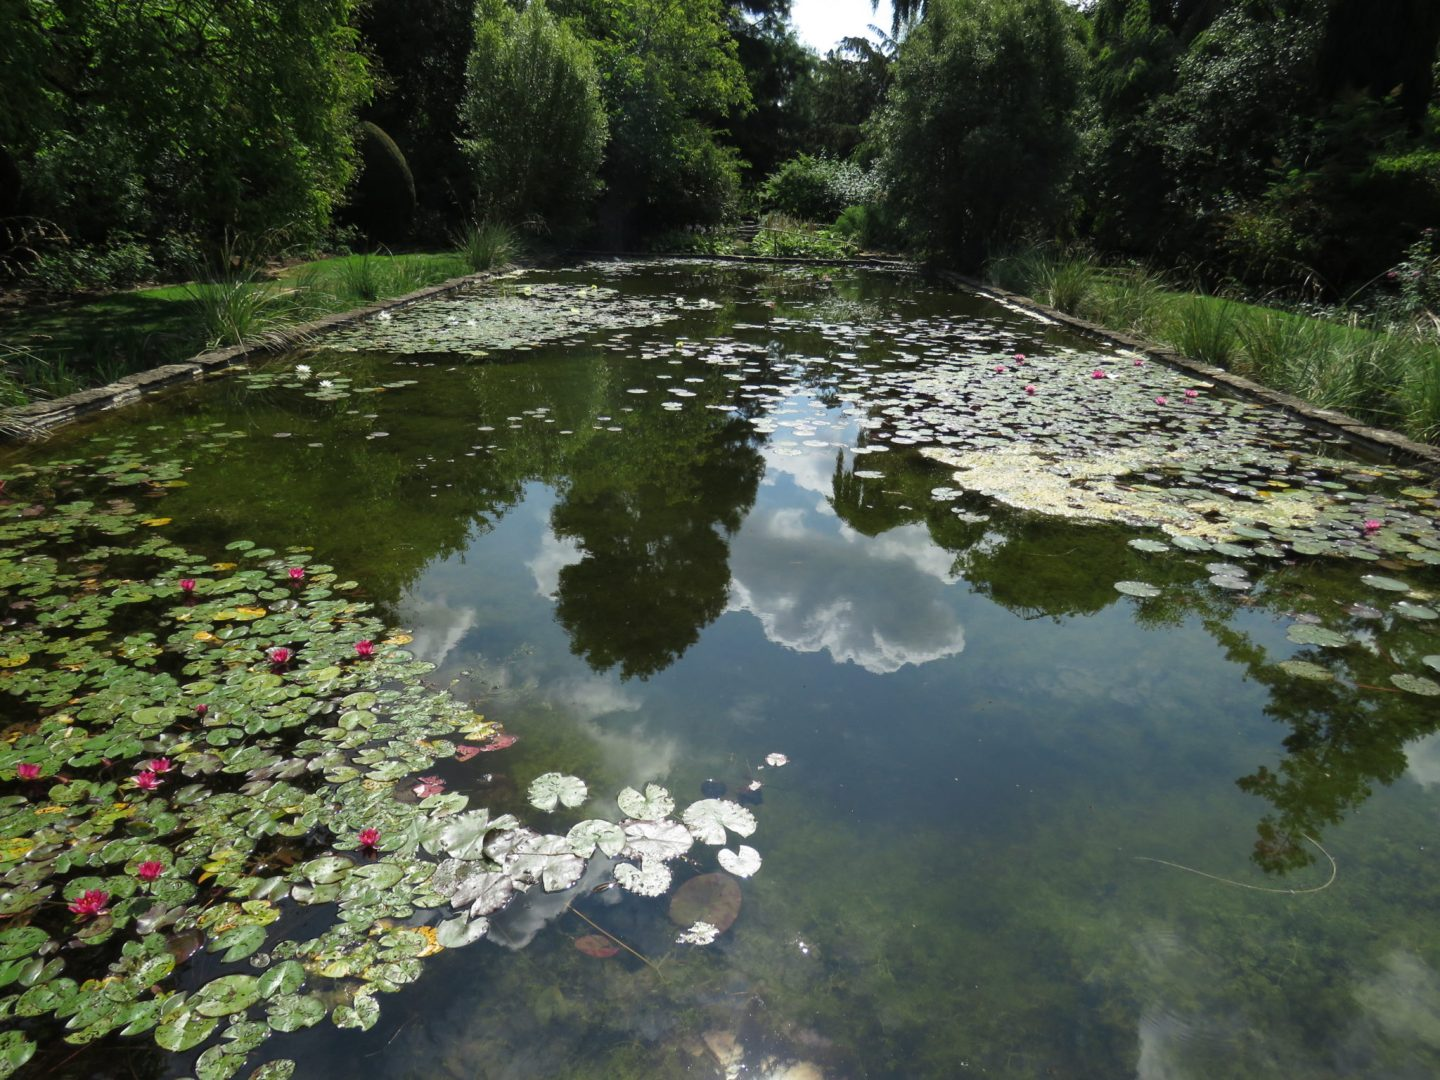 Pond reflections at the National Trust's The Courts, Holt, Wiltshire